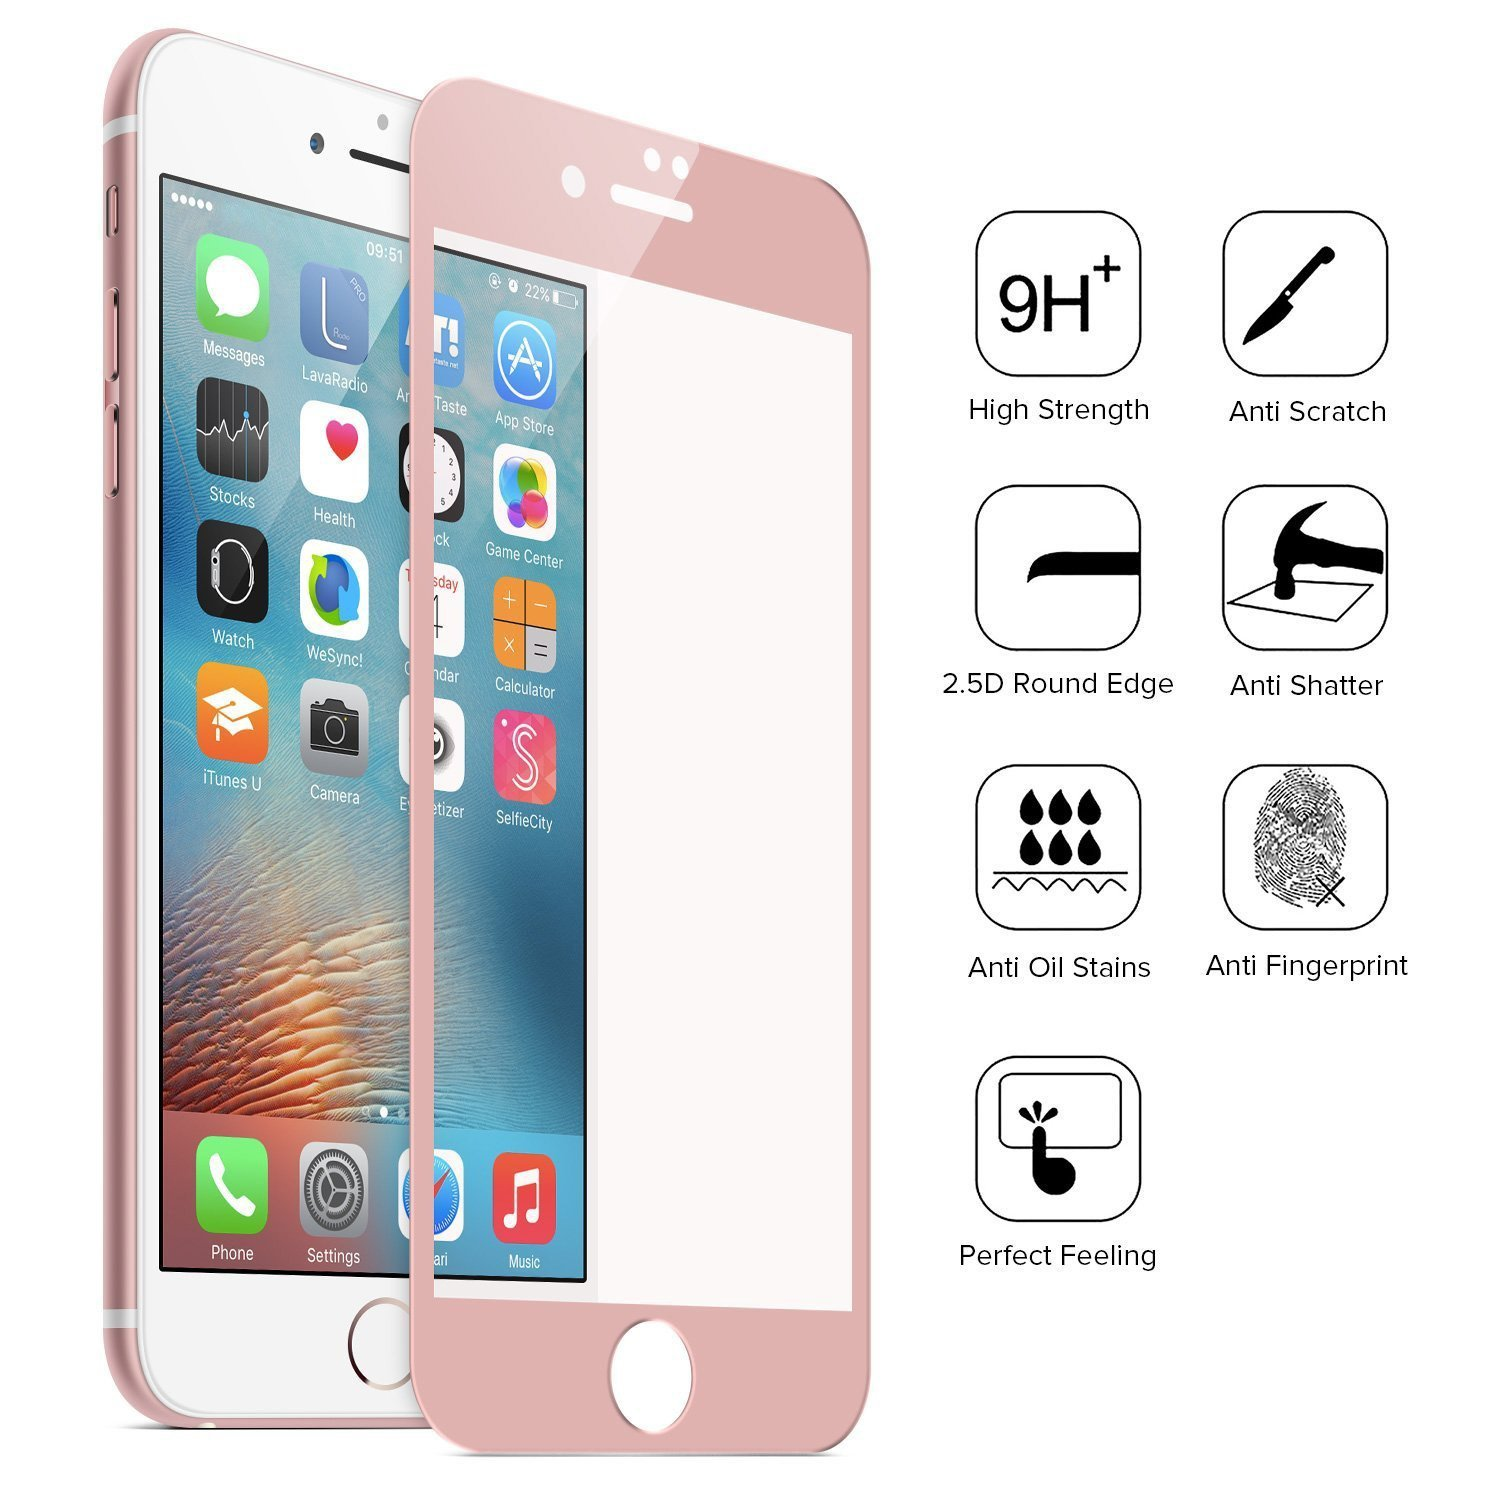 Full Coverage RoseGold Tempered Glass Screen Protectector for iPhone 6 Plus/6S Plus